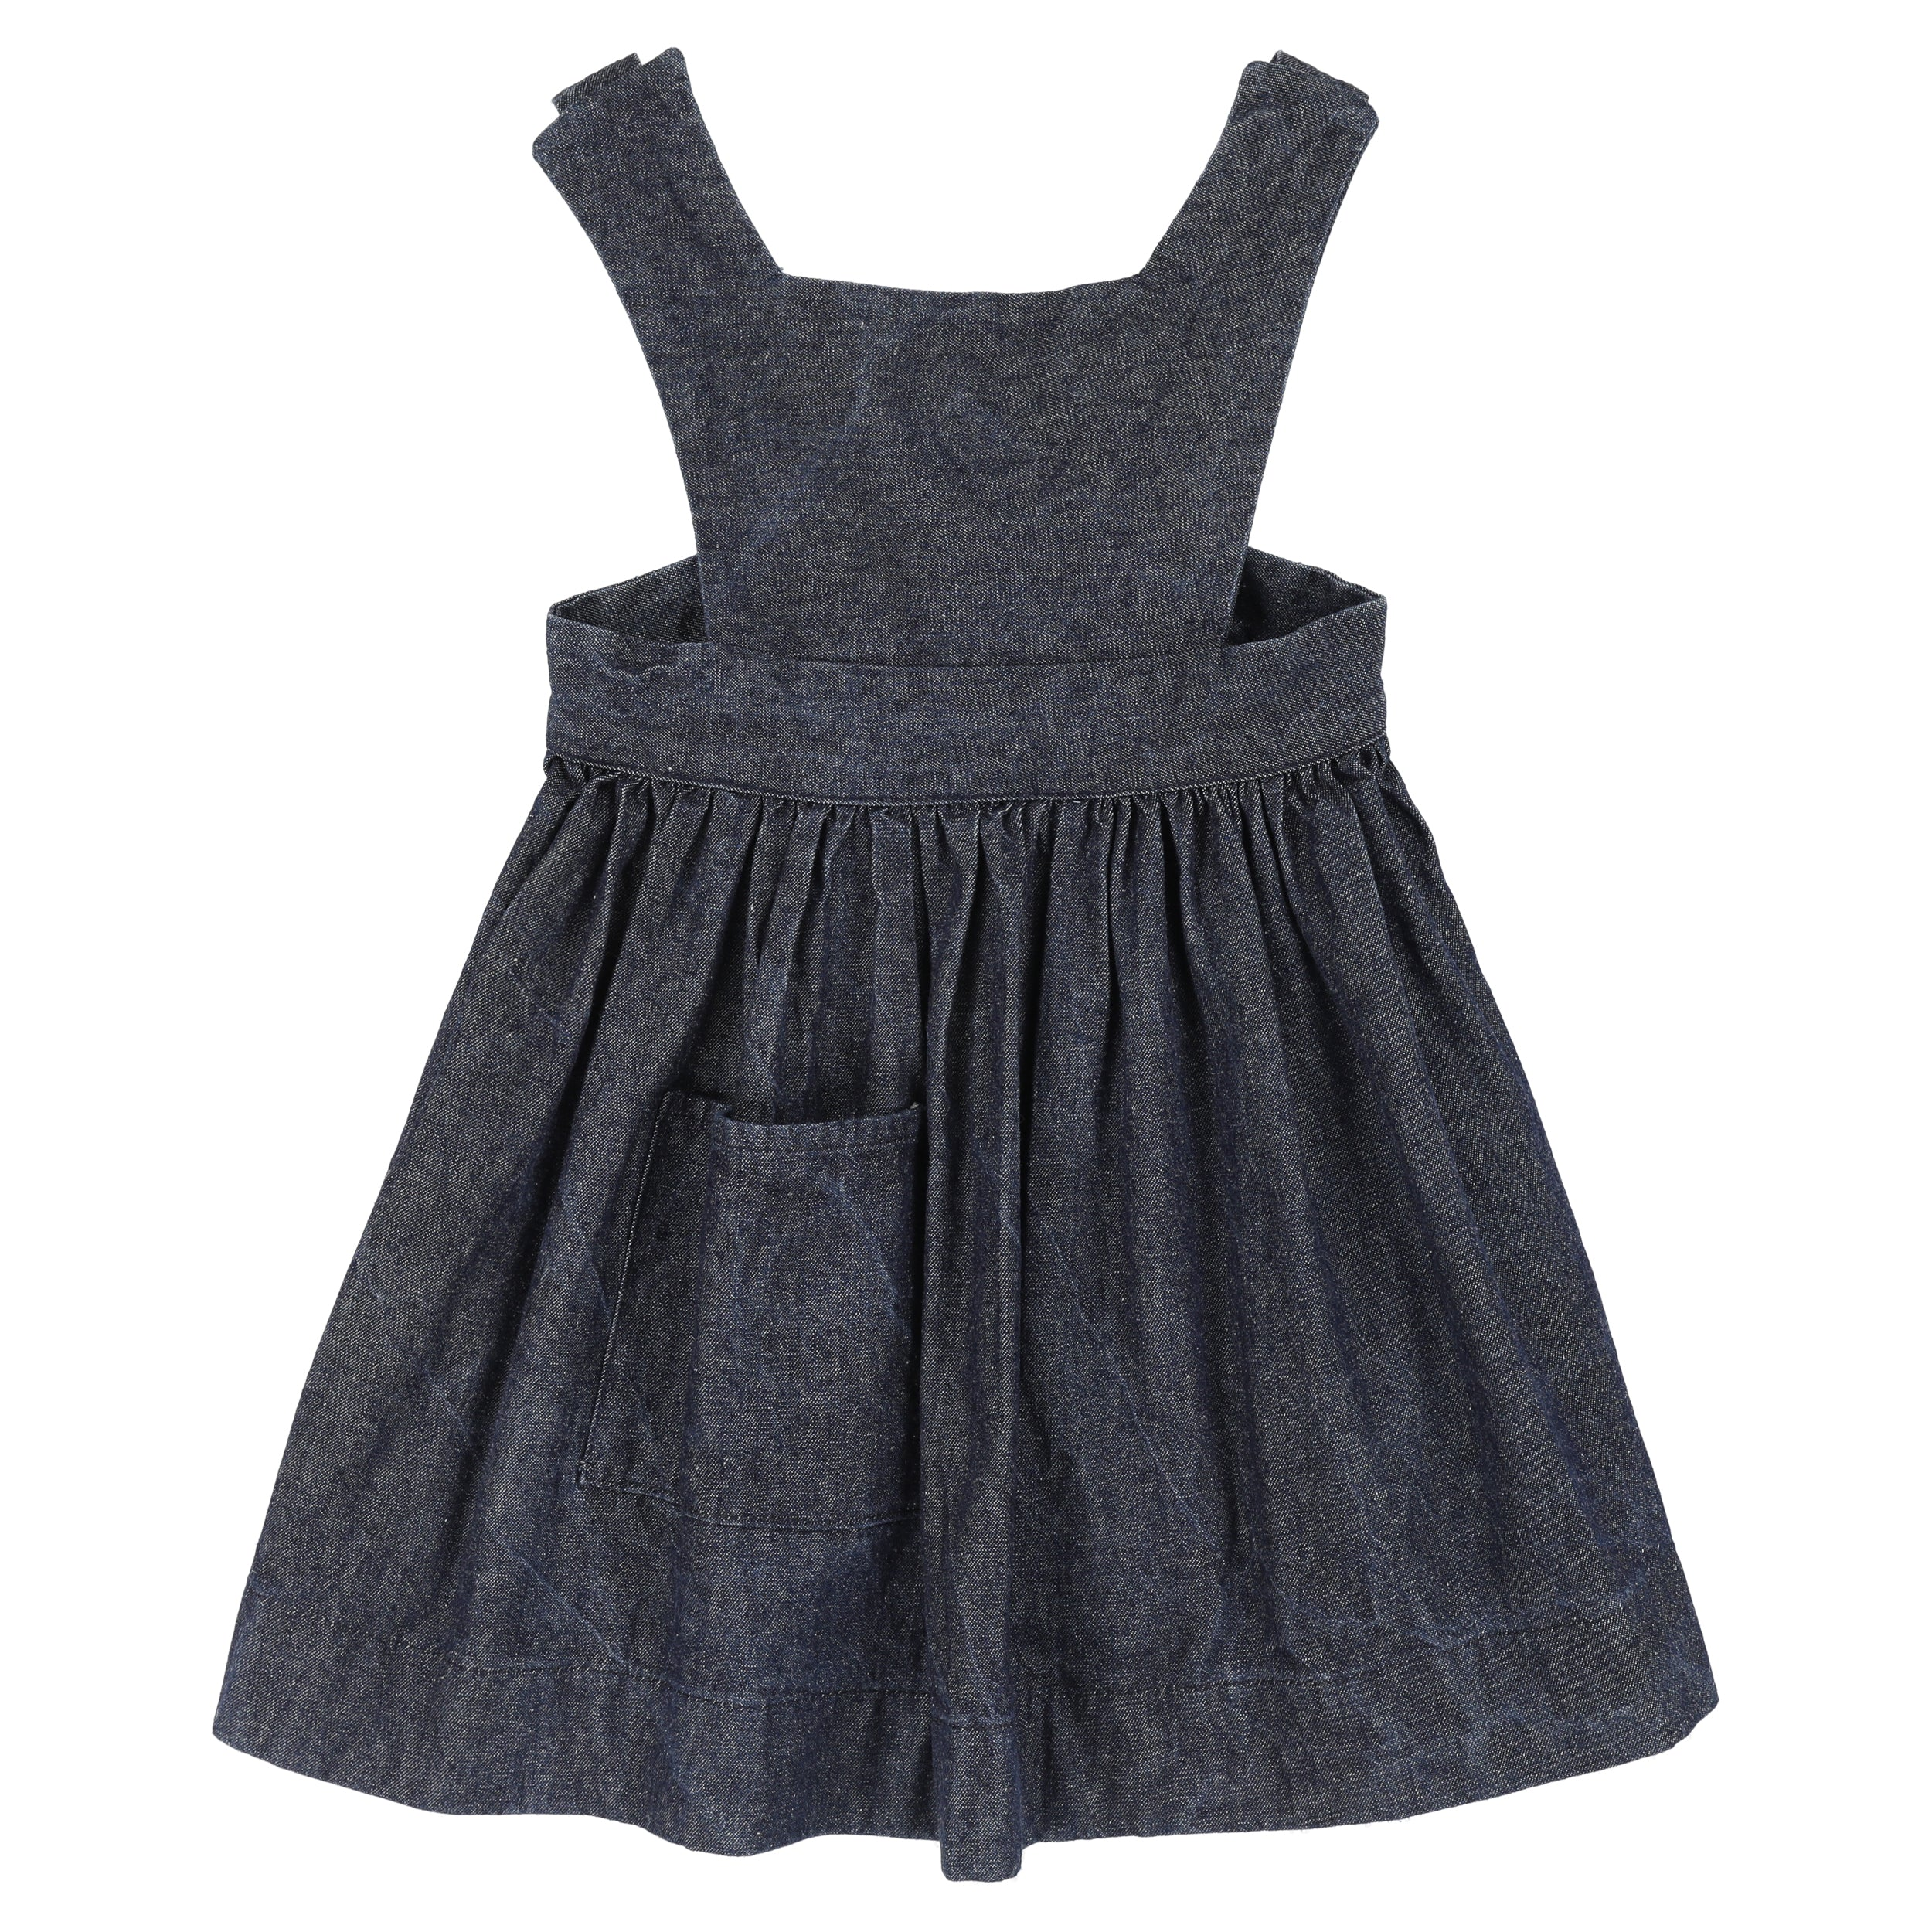 Children's Pinafore Apron